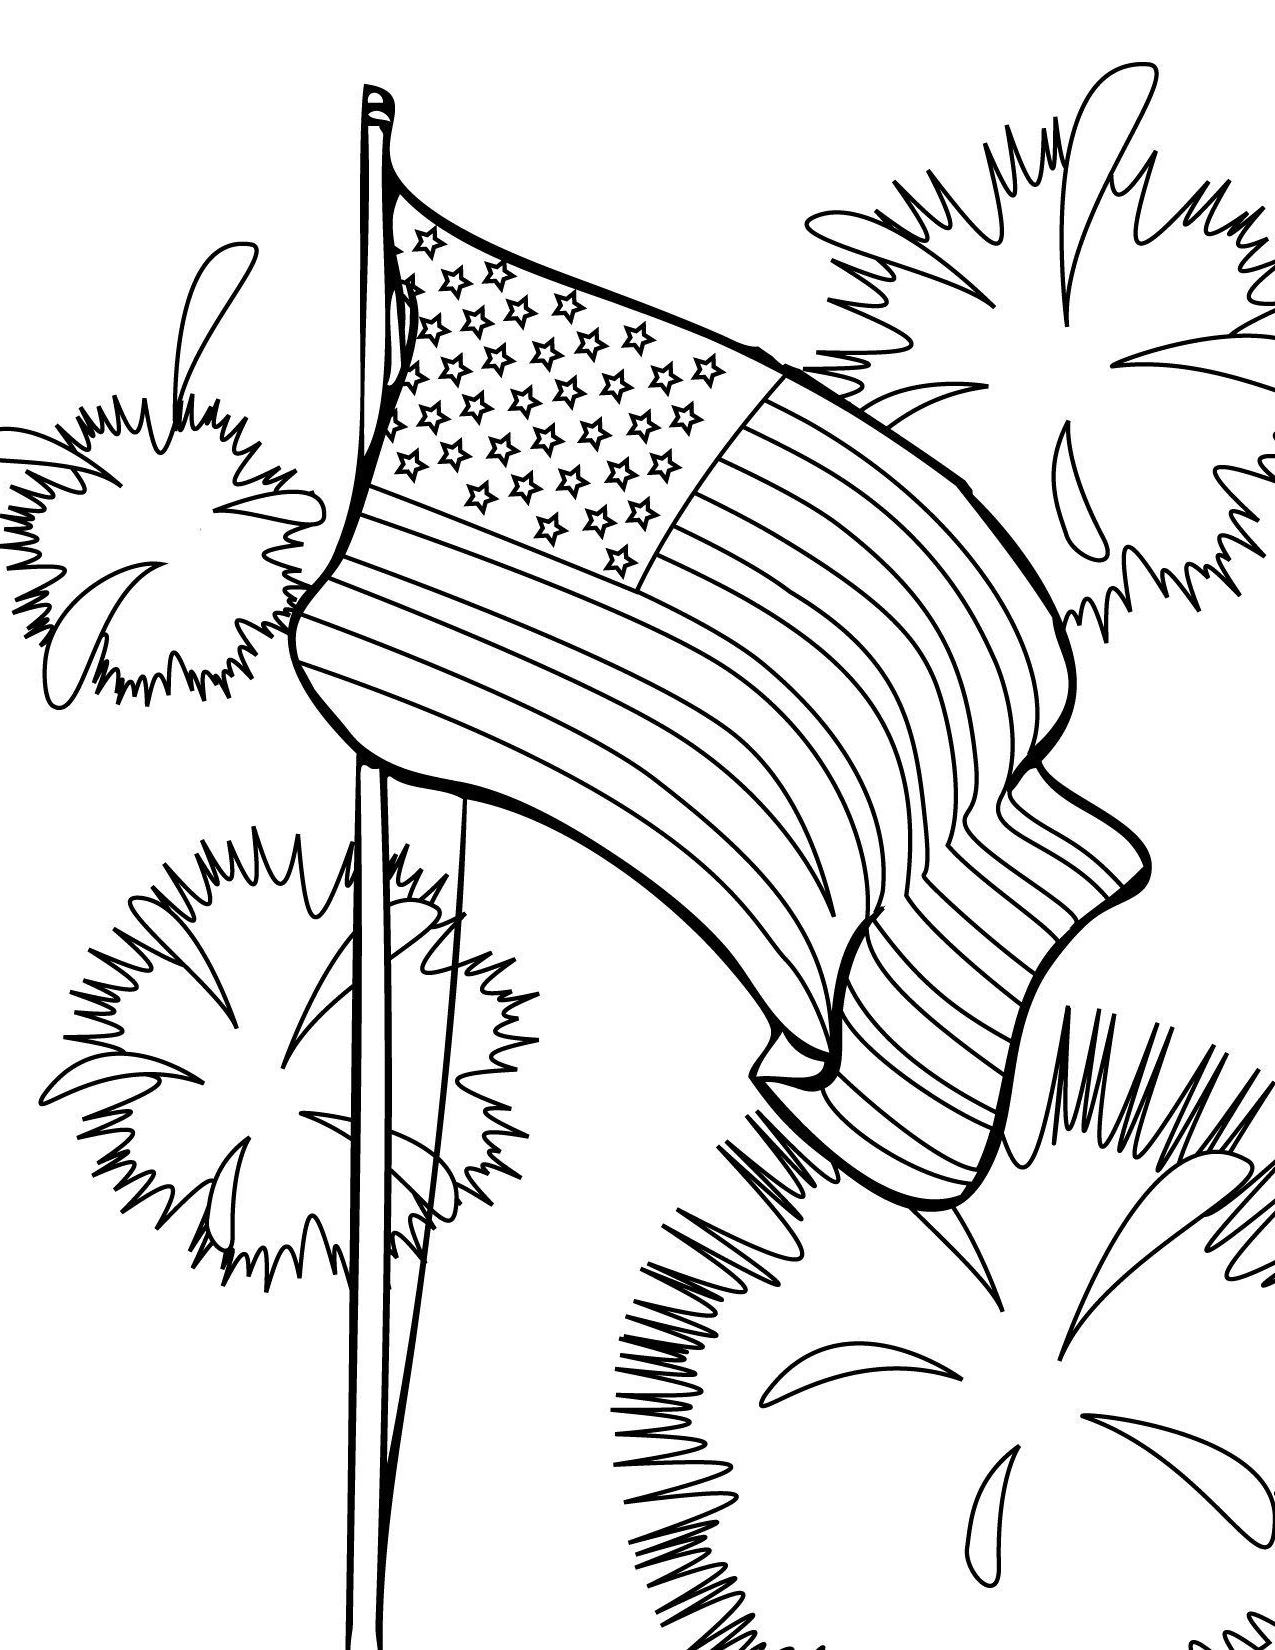 American Flag Coloring Pages Best Coloring Pages For Kids American Color Pages